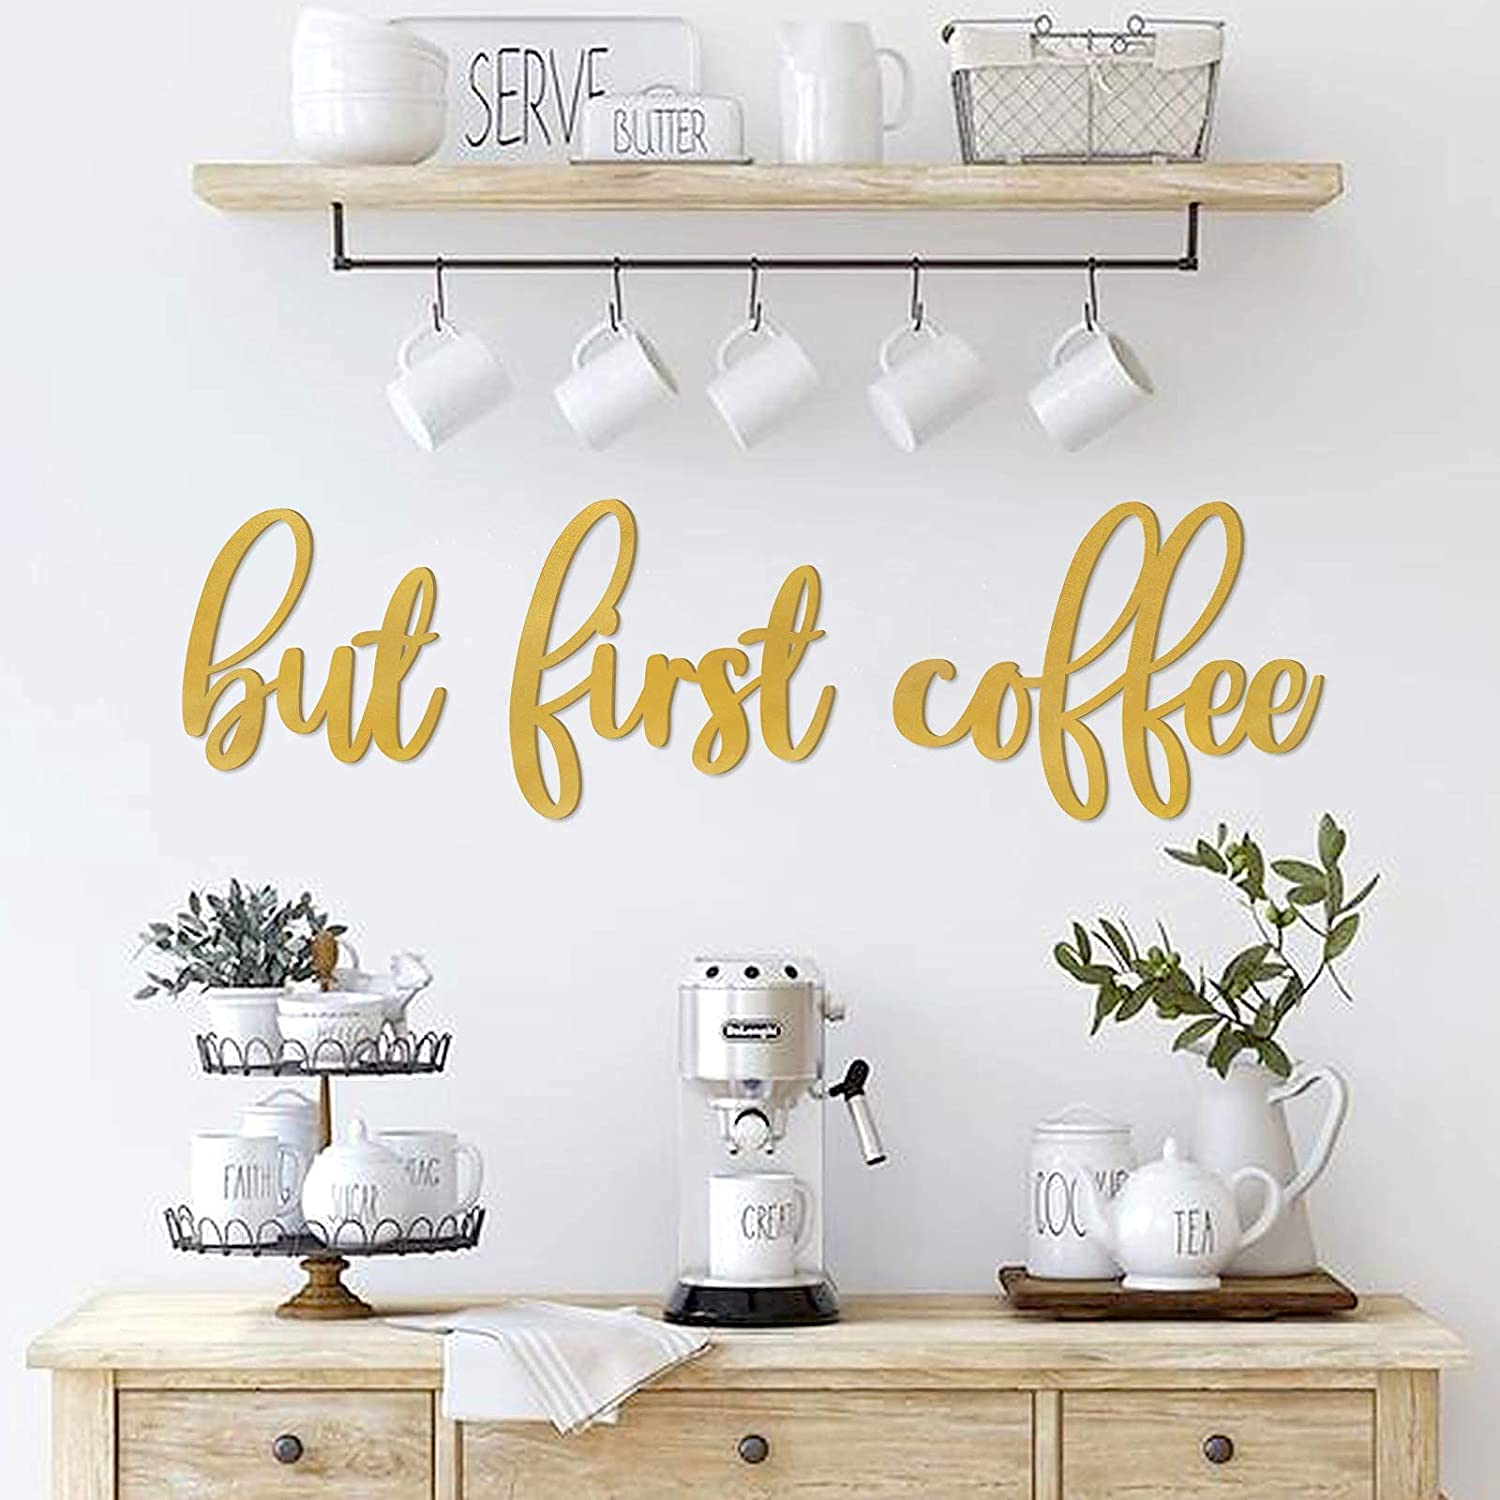 Coffee Bar Kitchen Wall Decor Coffee Wood Signs But First Coffee Words Decorations for Home Decoration Art, Kitchen, Eating Area, Breakfast Nook, Cafe or Restaurants Diner, House Warming Gifts, Gold